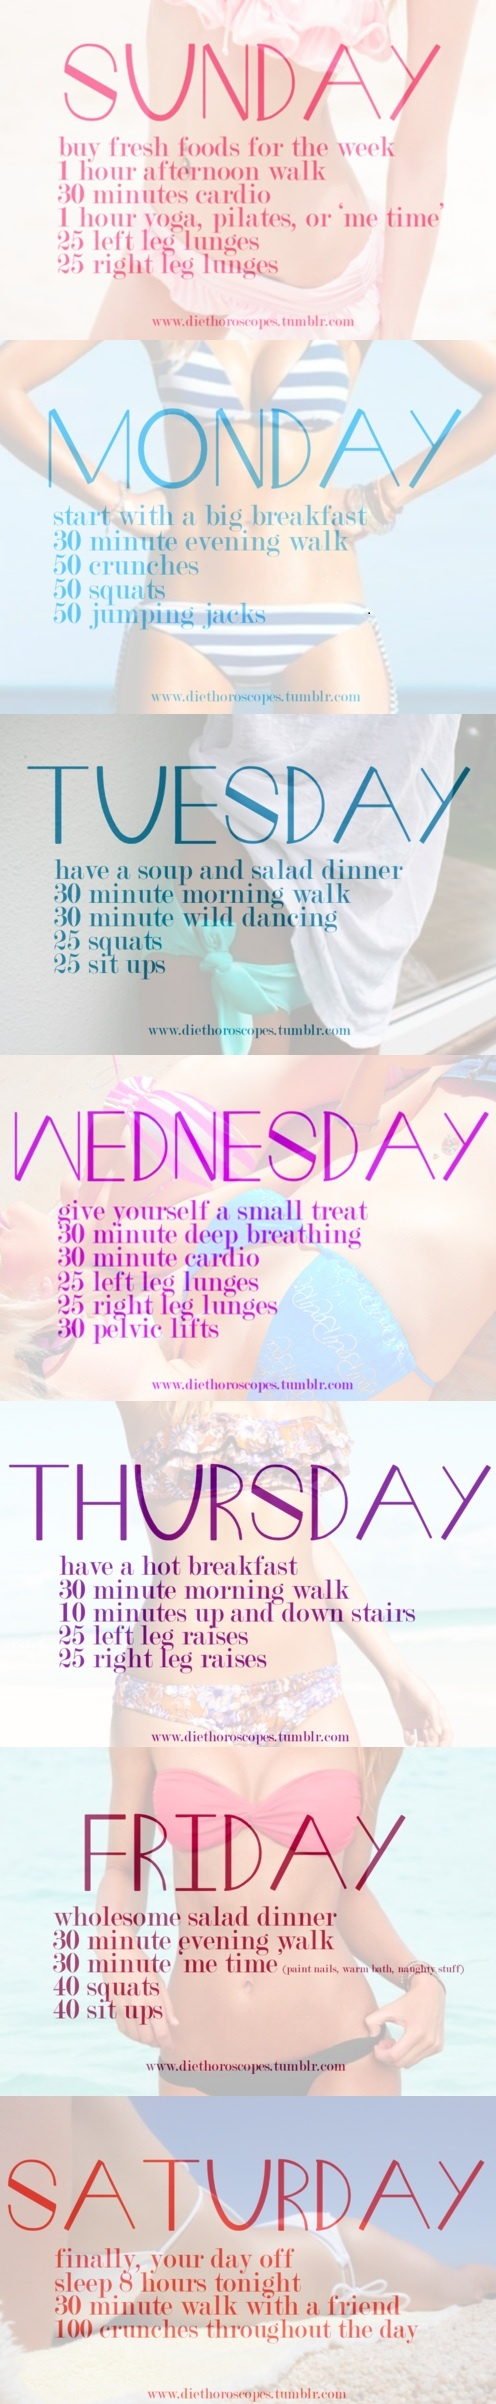 If you're looking for a way to change up your workout for a few weeks, try this!Fit Plans, Weeks Workout, Daily Workout, Lifestyle Change, Workout Routines, Workout Plans, Workout Schedule, Work Out, Weekly Workouts